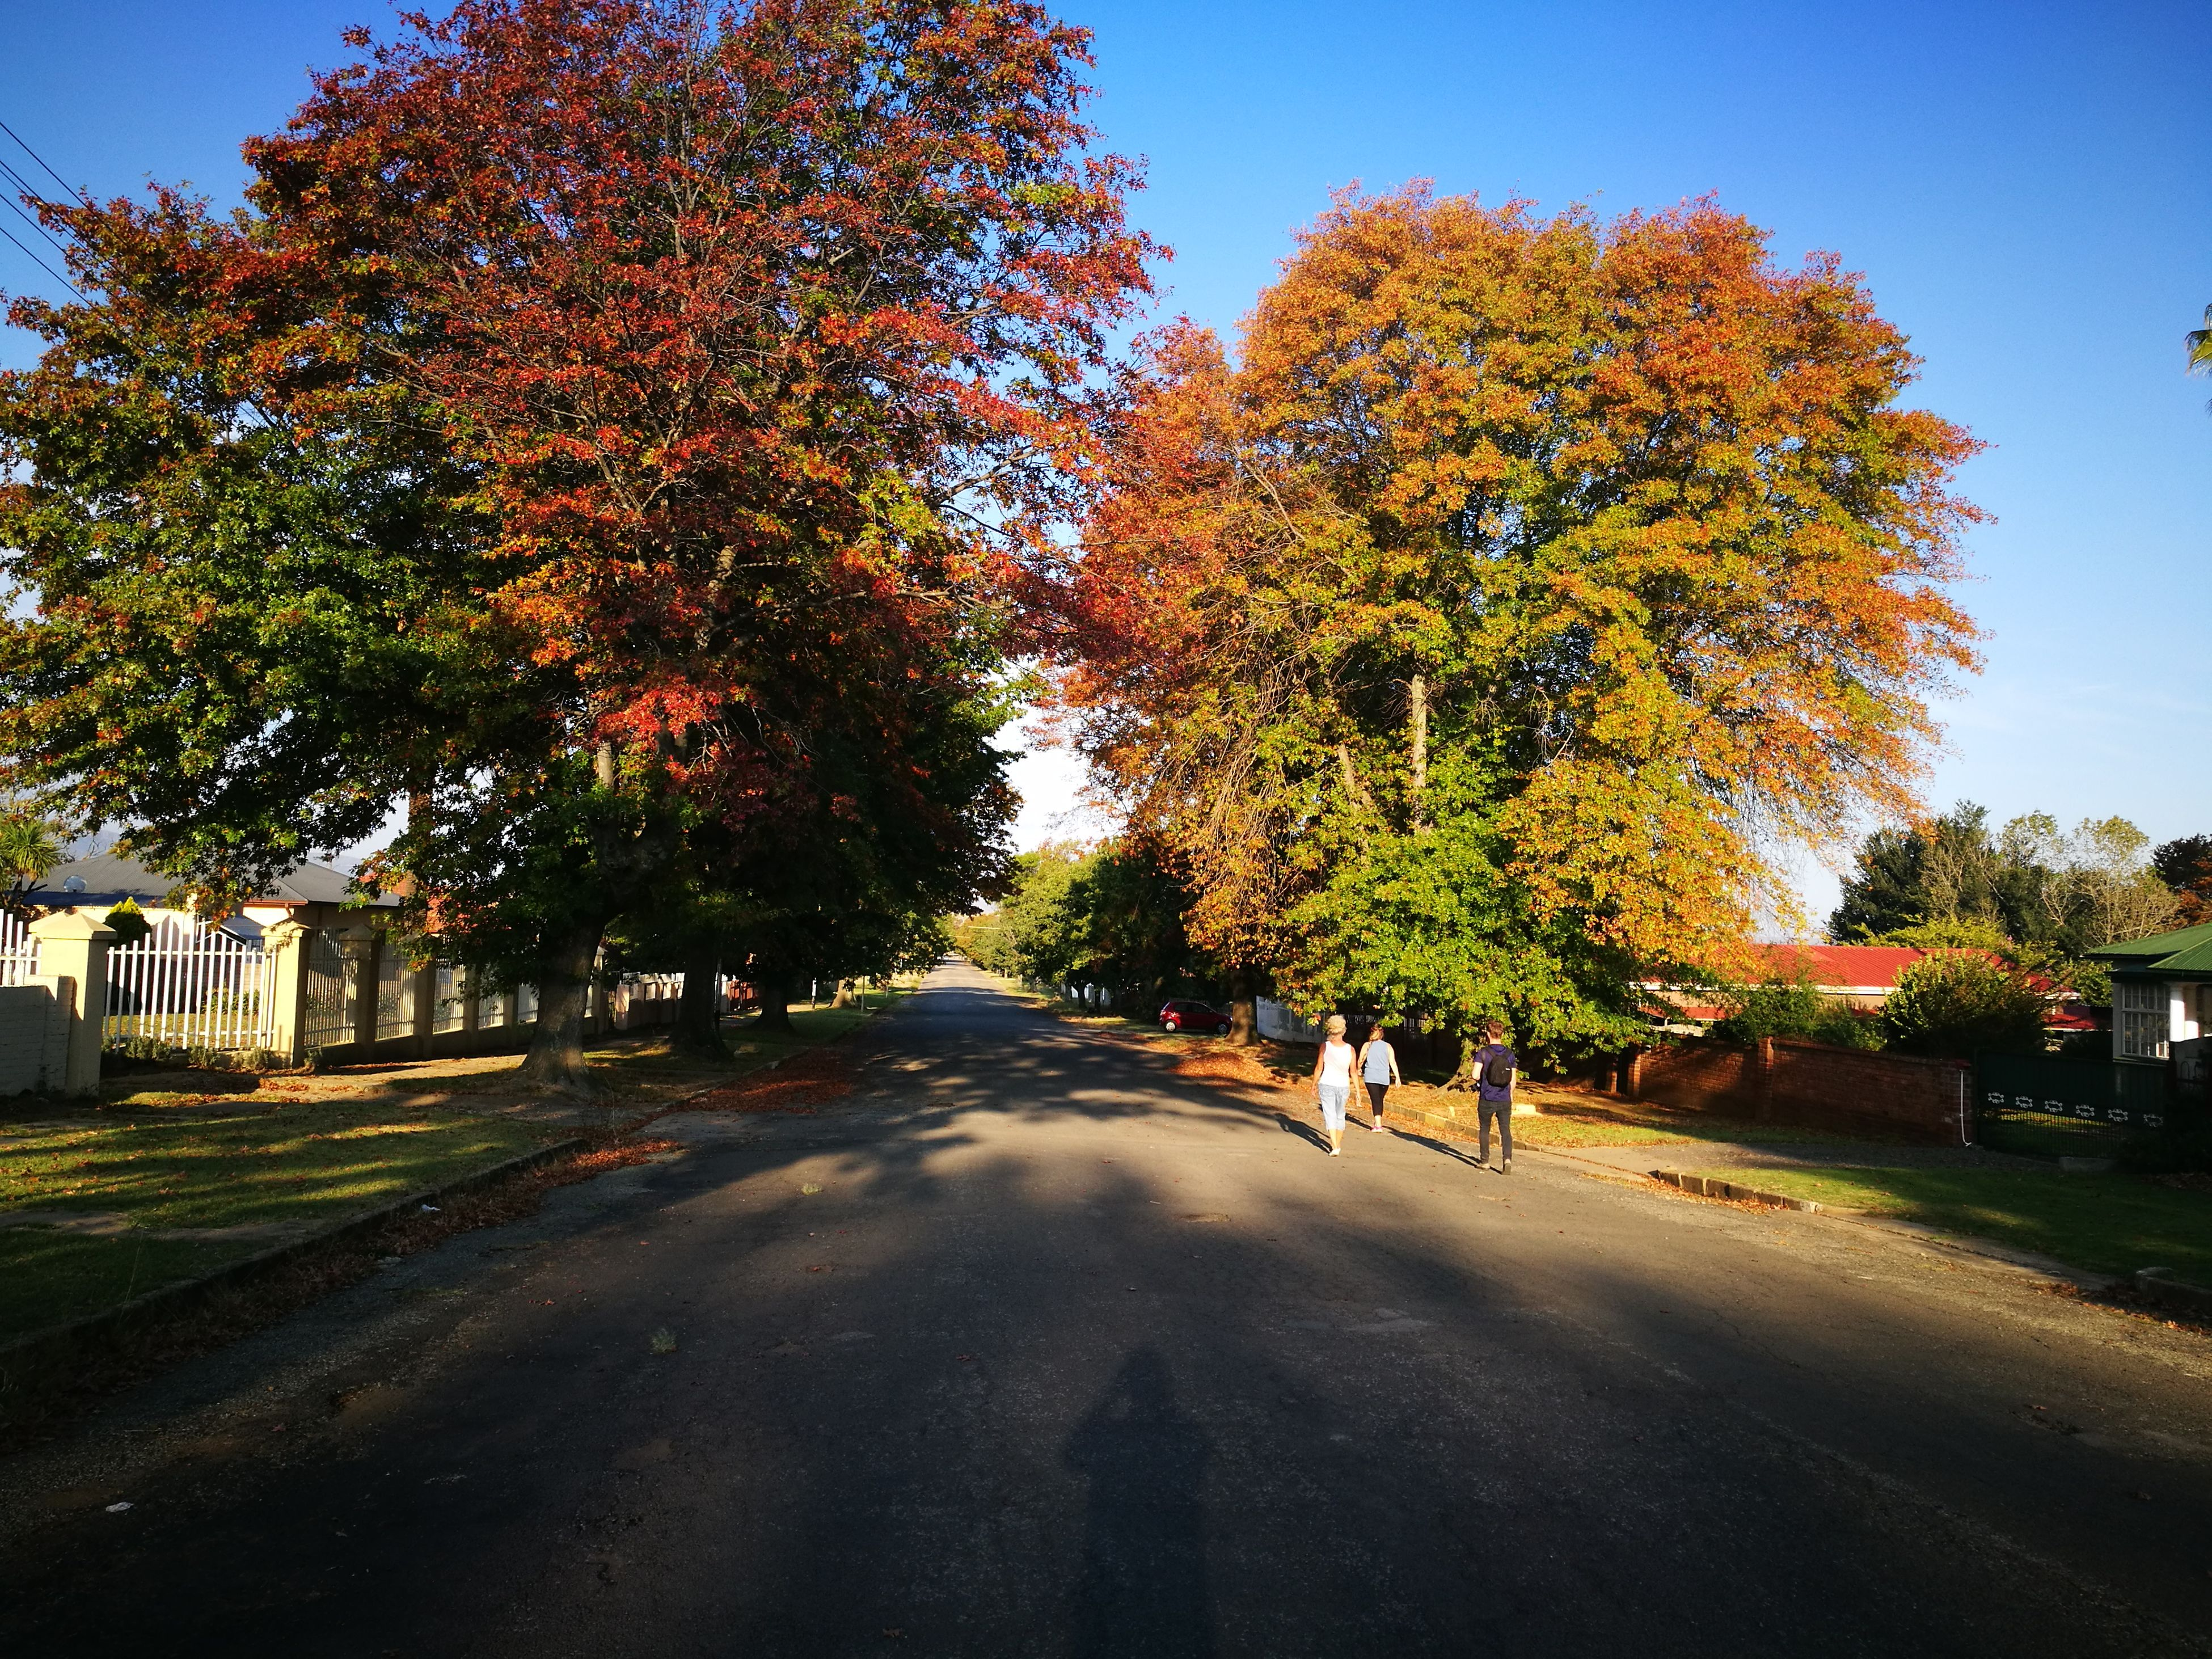 tree, road, transportation, no people, the way forward, growth, outdoors, sky, nature, day